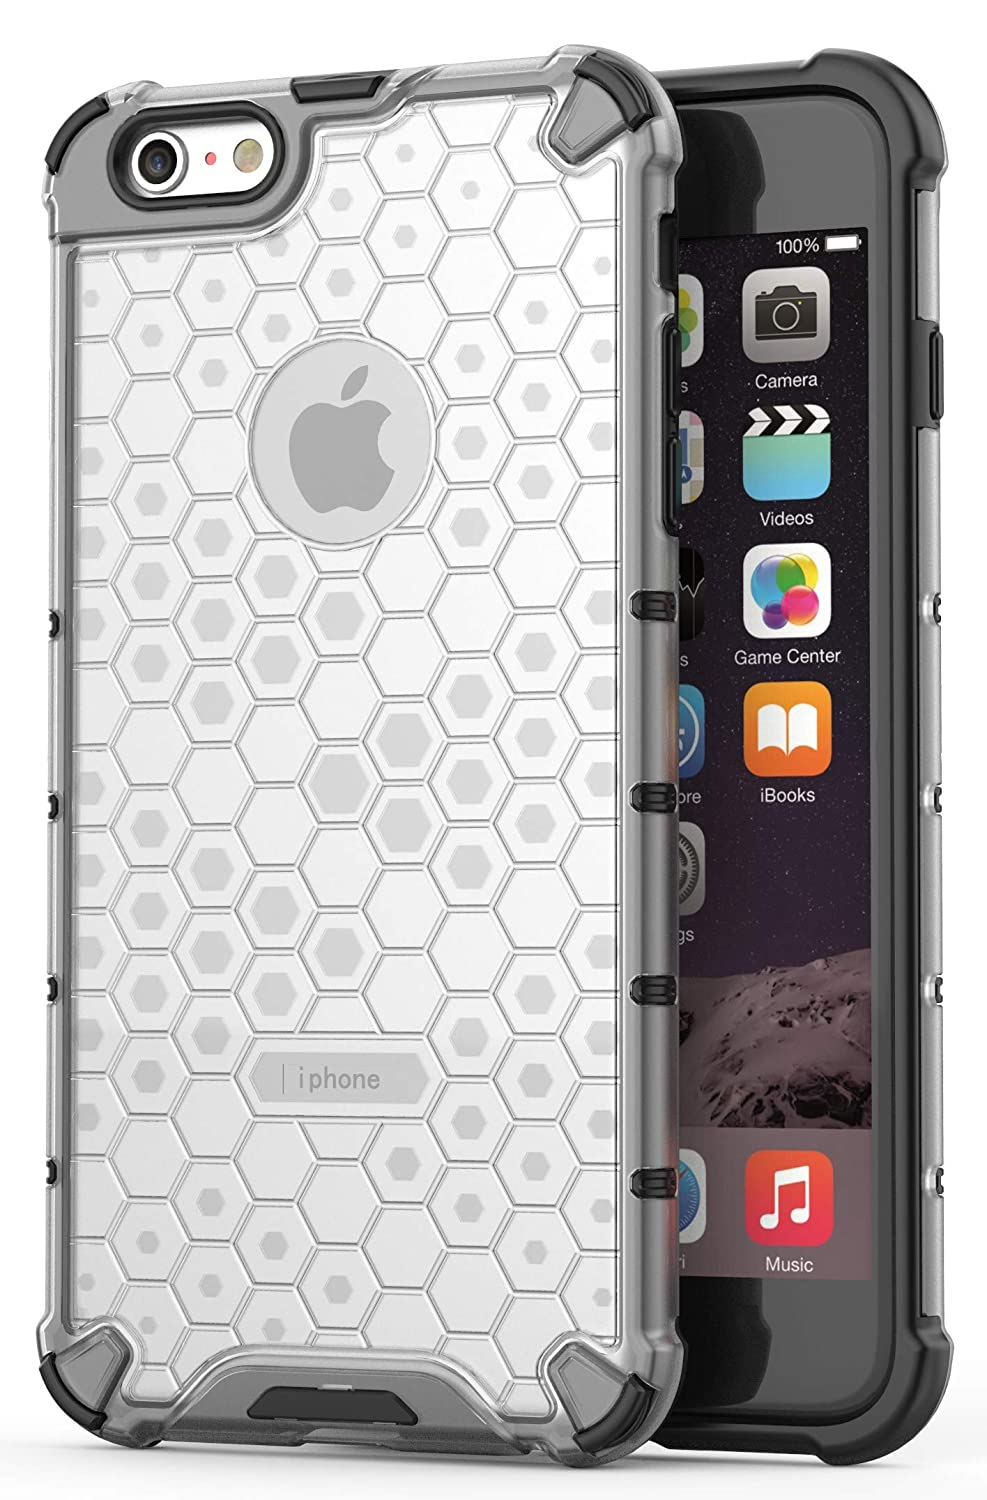 Glasgow Back Case Cover Compatible with Apple iPhone 6 Plus  Honeycomb Pattern    Transparent Cases   Covers